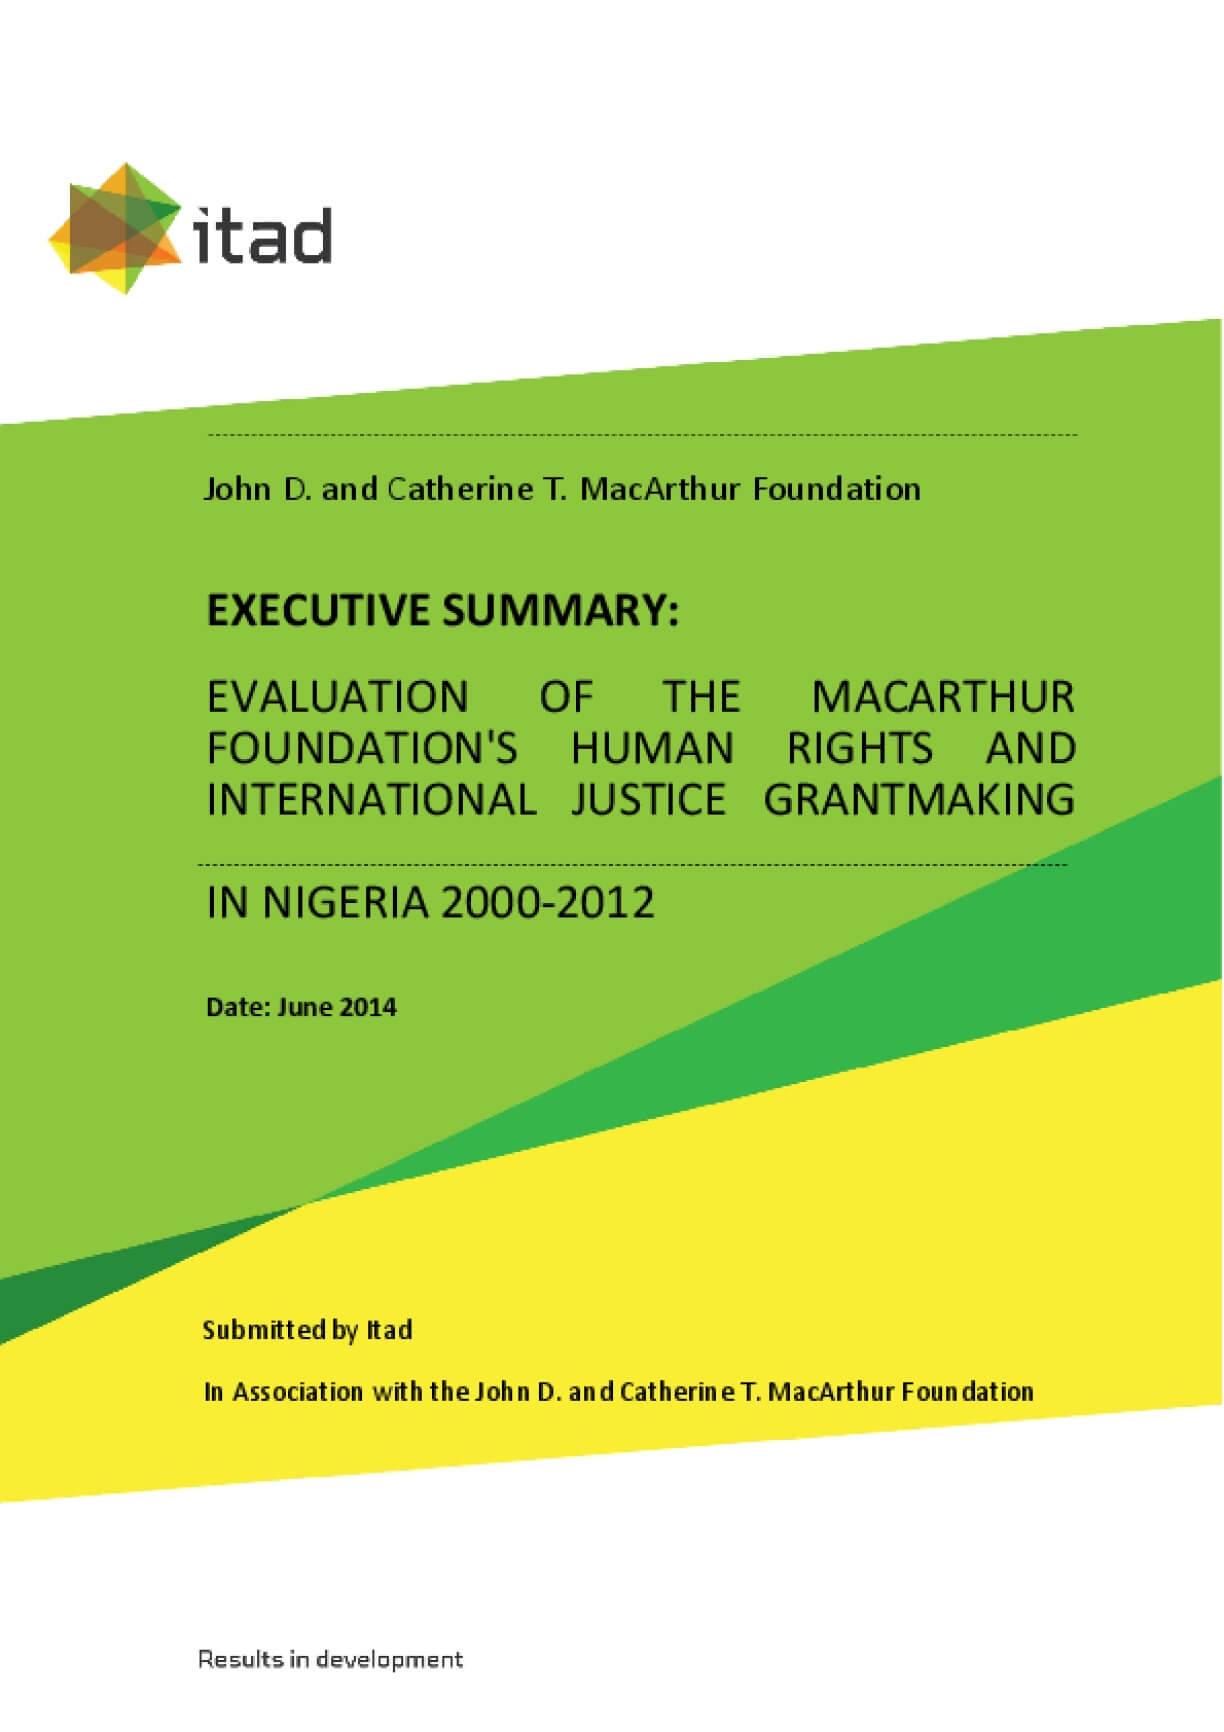 Executive Summary: Evaluation of the MacArthur Foundation's Human Rights and International Justice Grantmaking in Nigeria 2000-2012